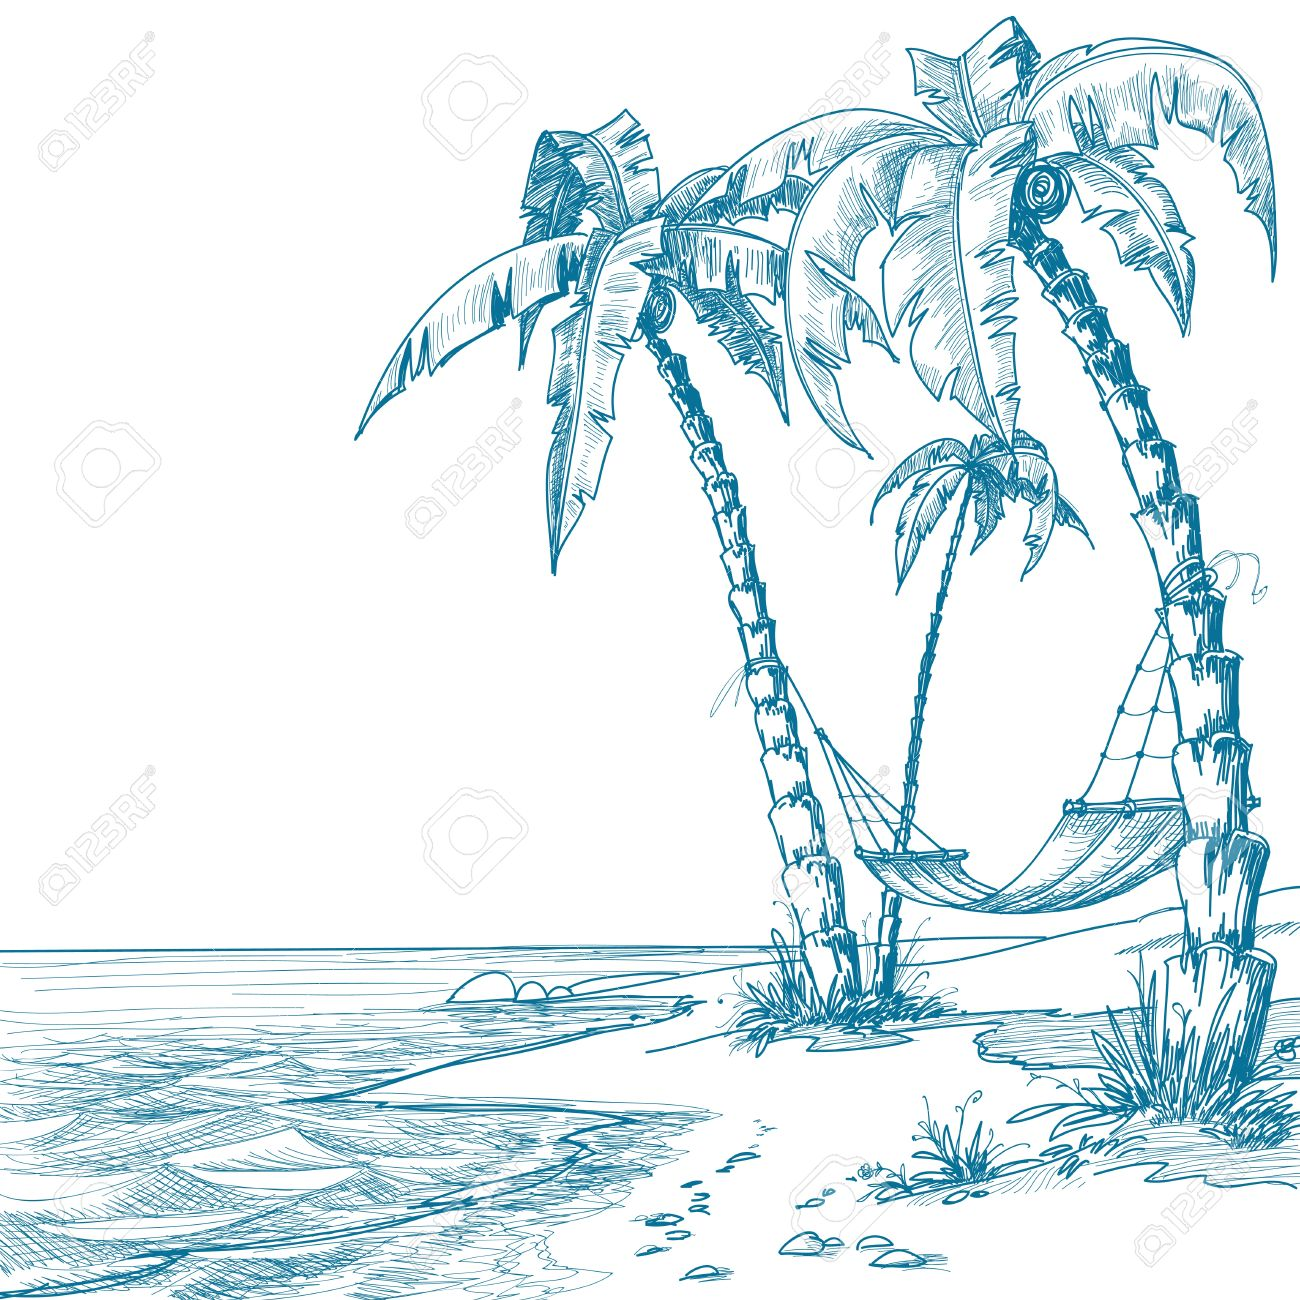 Tropical beach with palm trees and hammock Stock Vector - 10171236